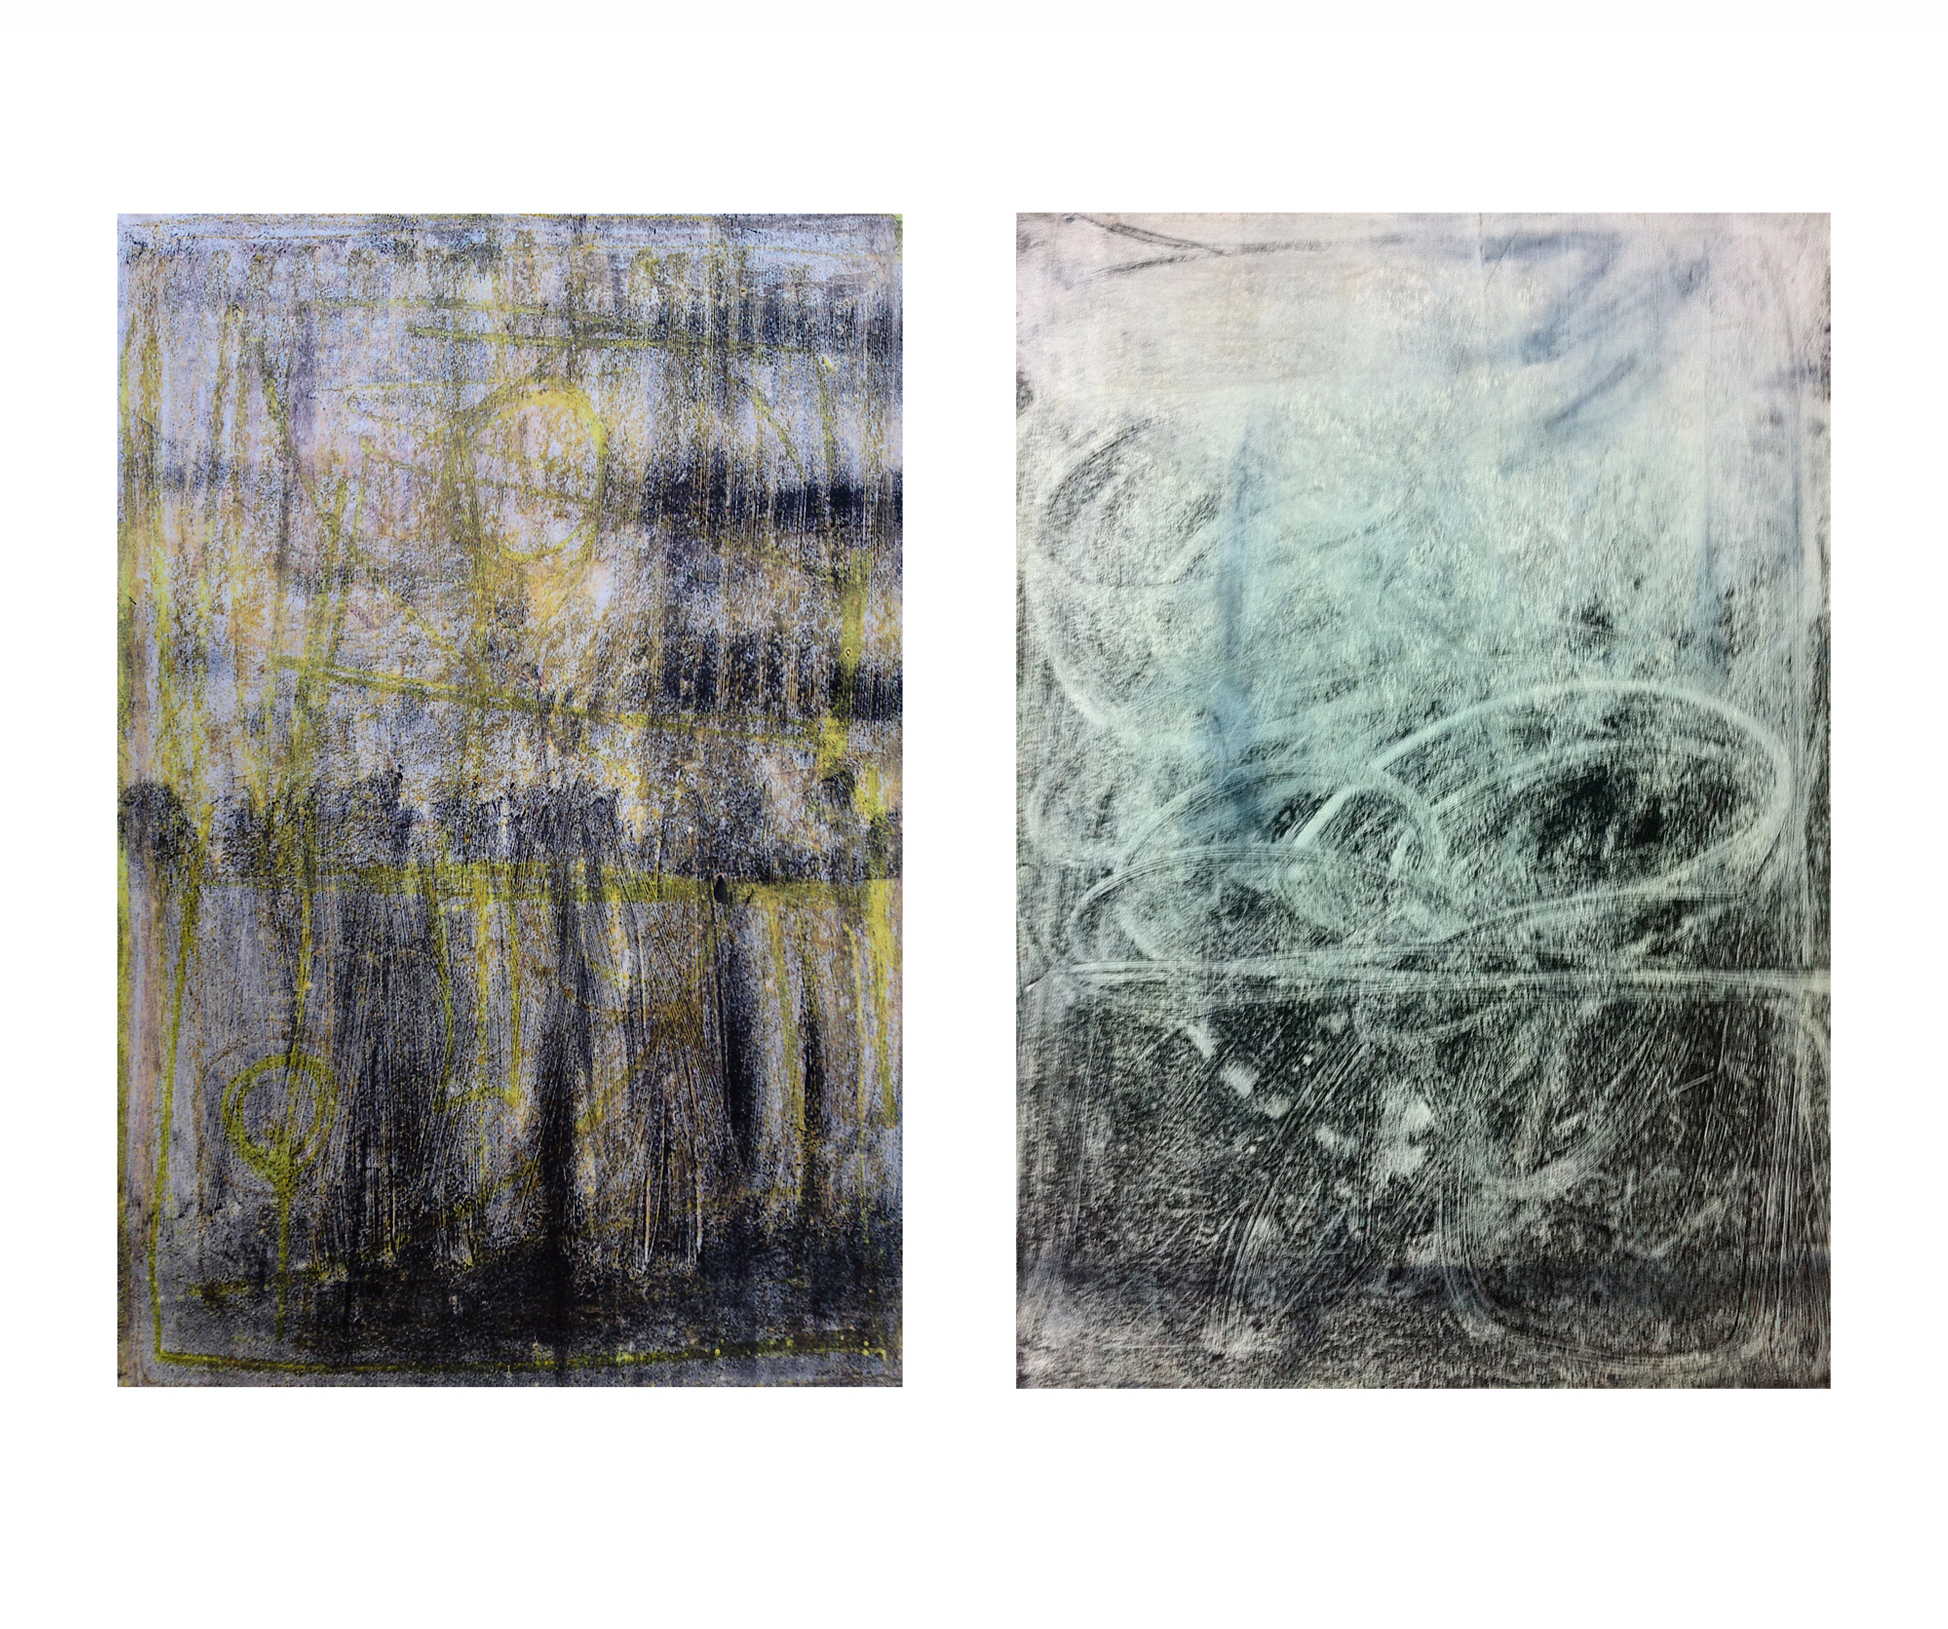 'A and B from Panel X Series', 2009, ink, spray paint and oil pastel monoprint on paper, 40 x 50 cm each